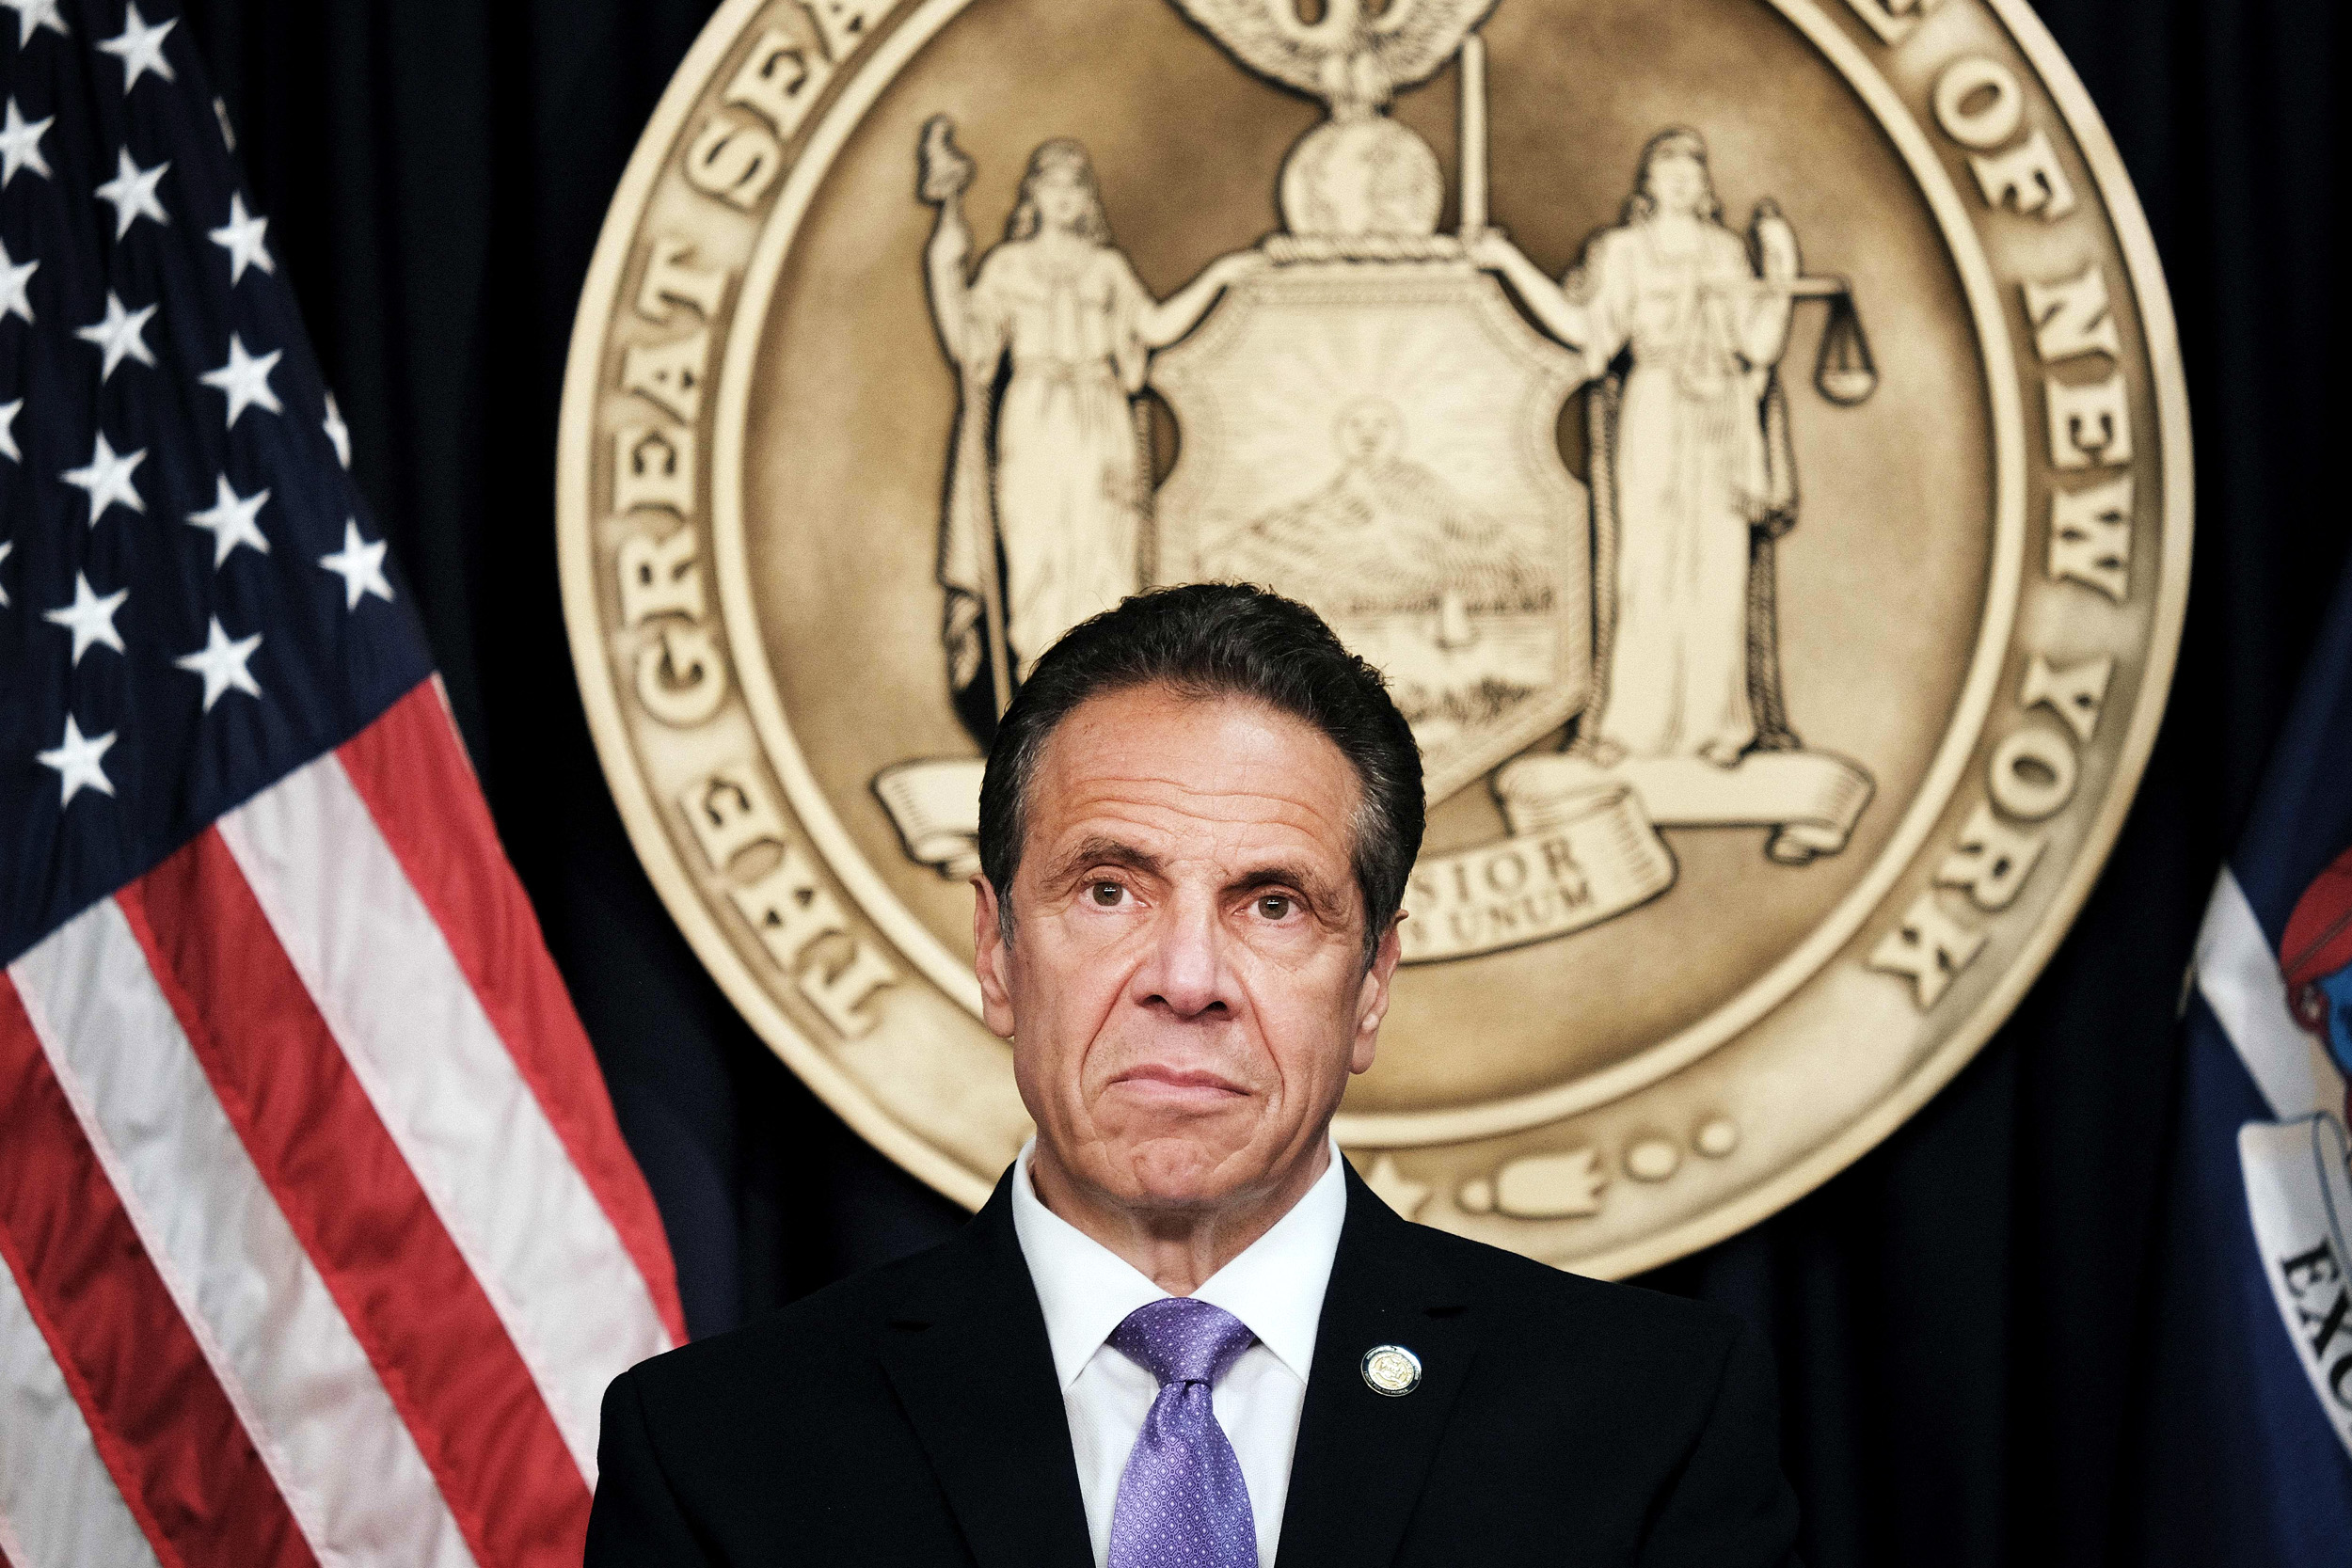 Cuomo sexually harassed multiple women, including employees, New York attorney general finds